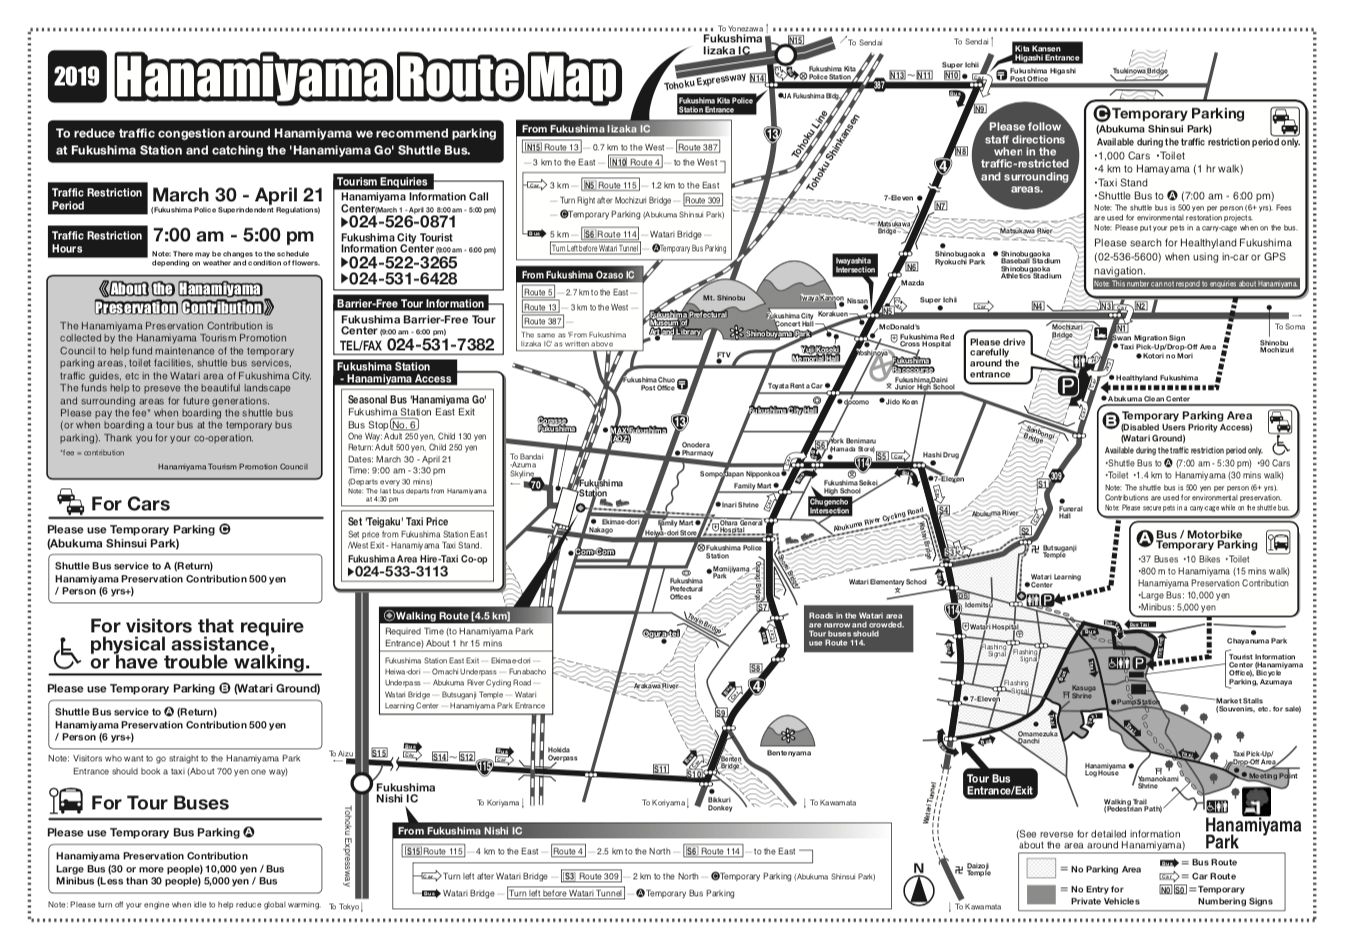 Hanamiyama Route Map 2019